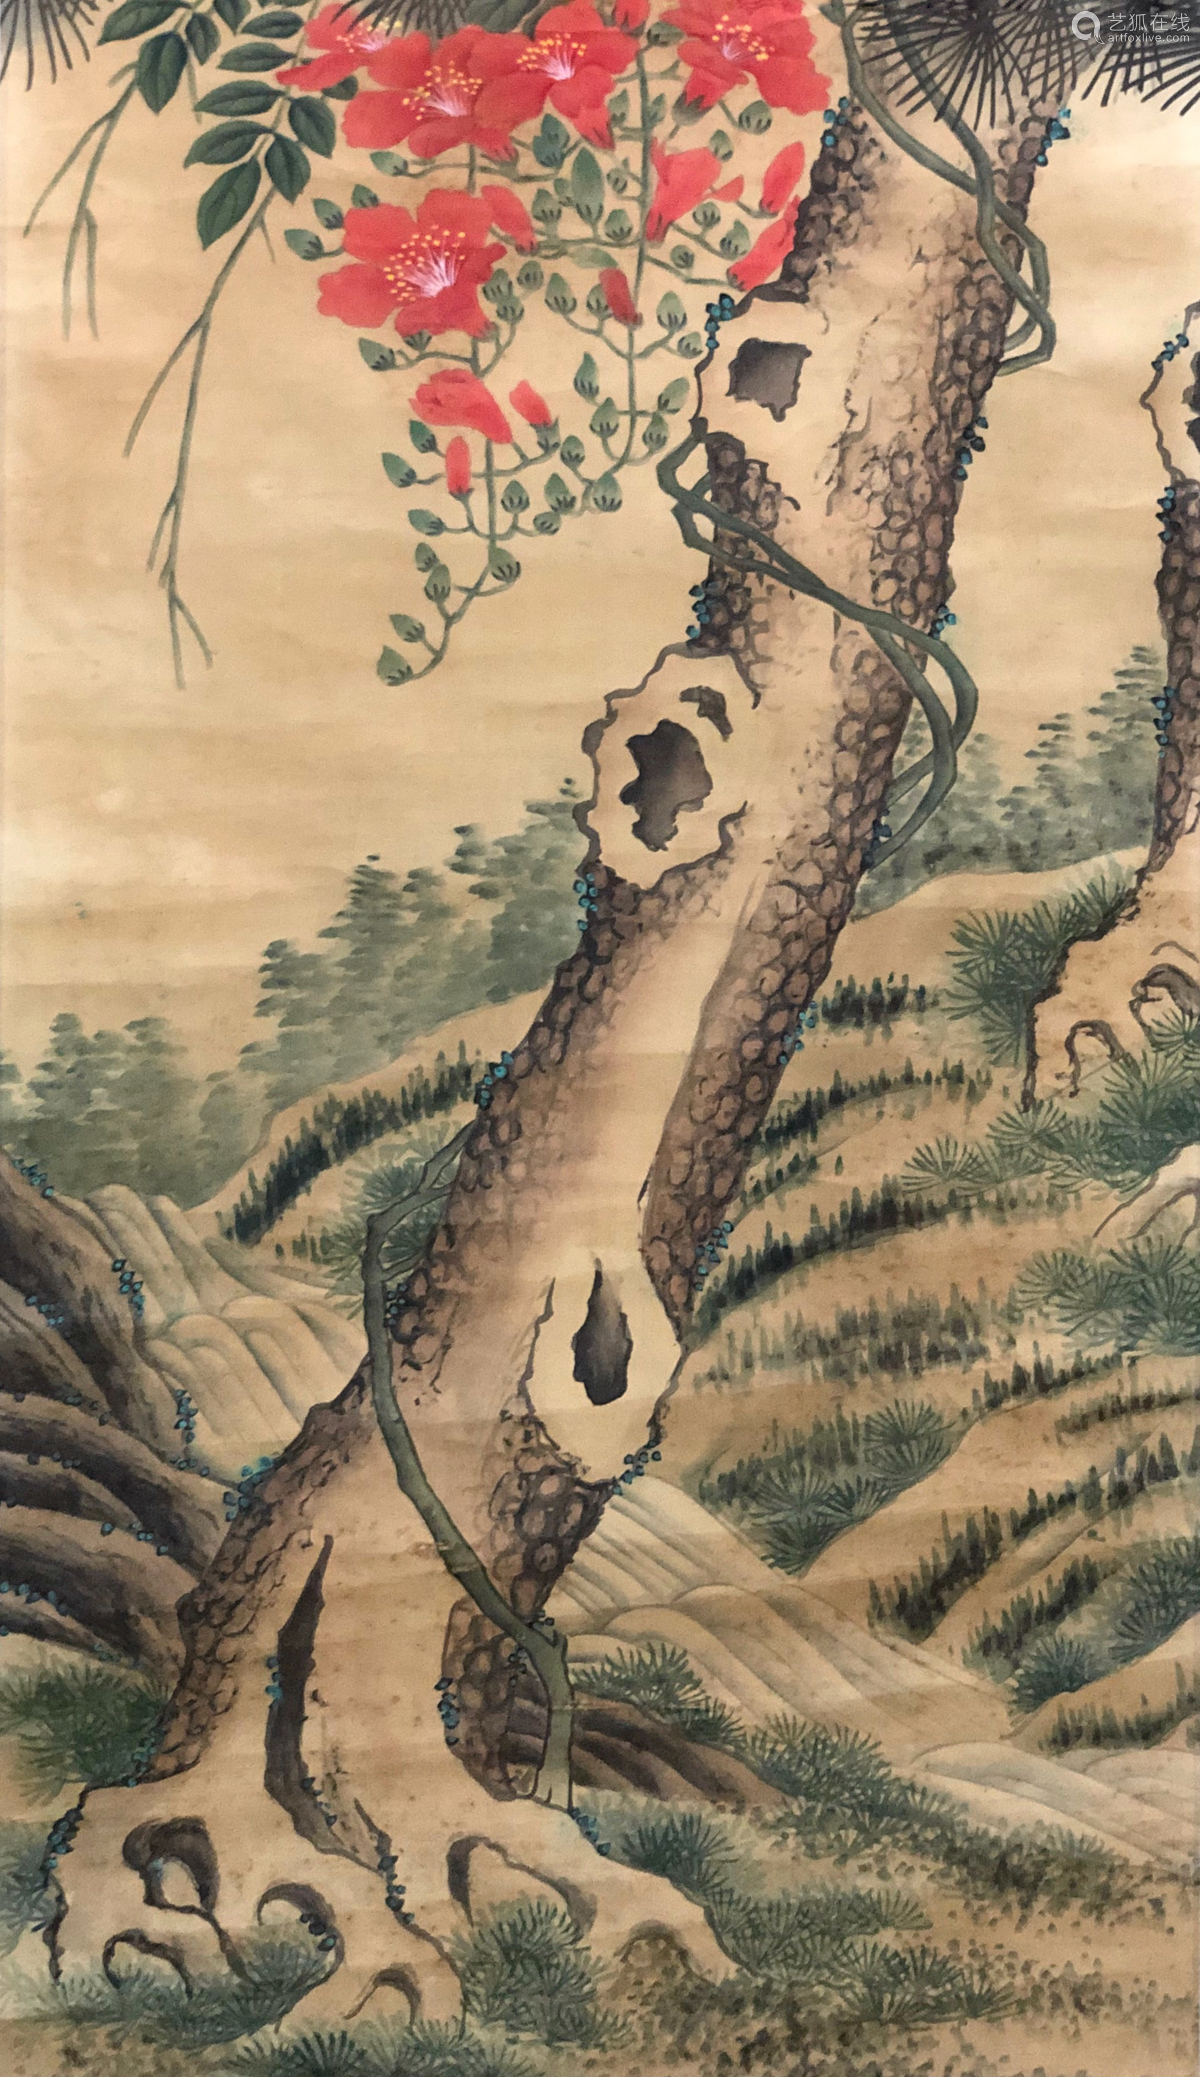 17-19TH CENTURY, UNKNOW <SONG QUAN SHAN YING> PAINTING, QING DYNASTY